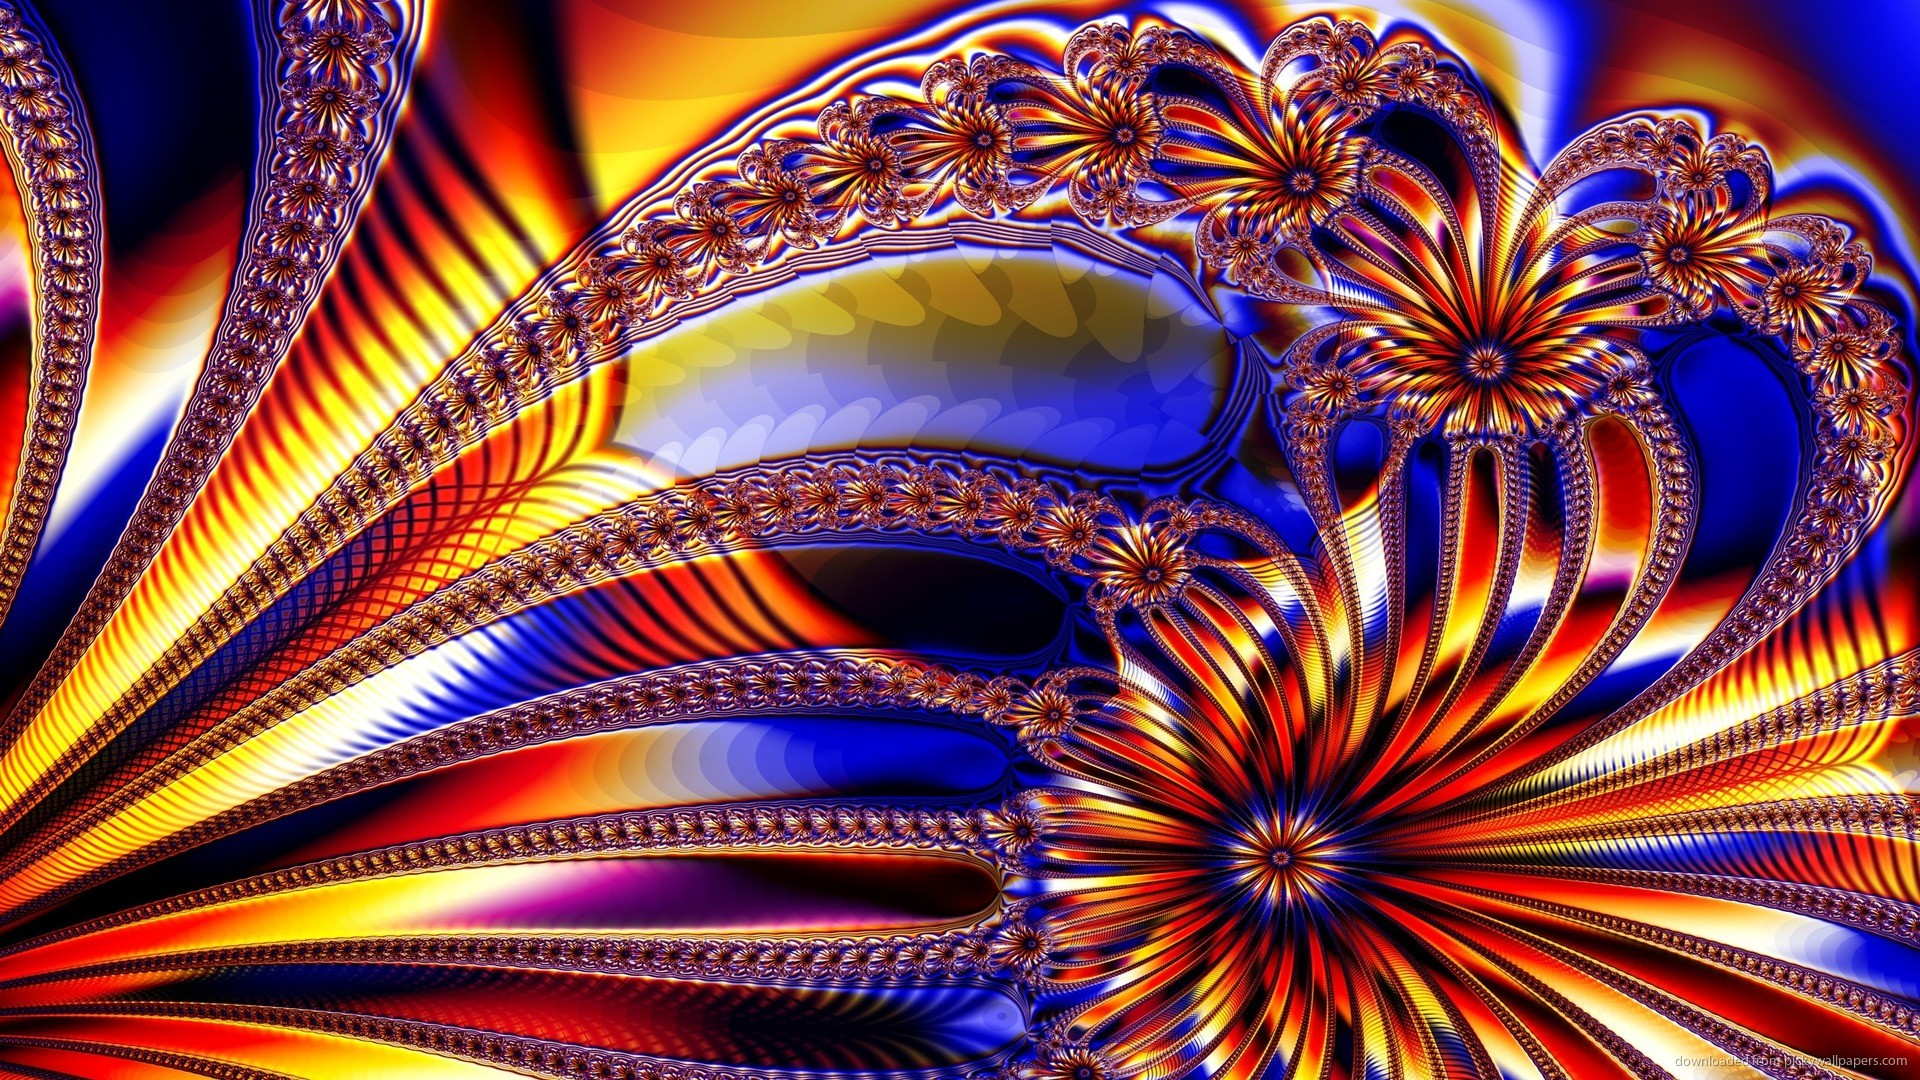 1920x1080 Digital Art Fractals Wallpaper Background picture